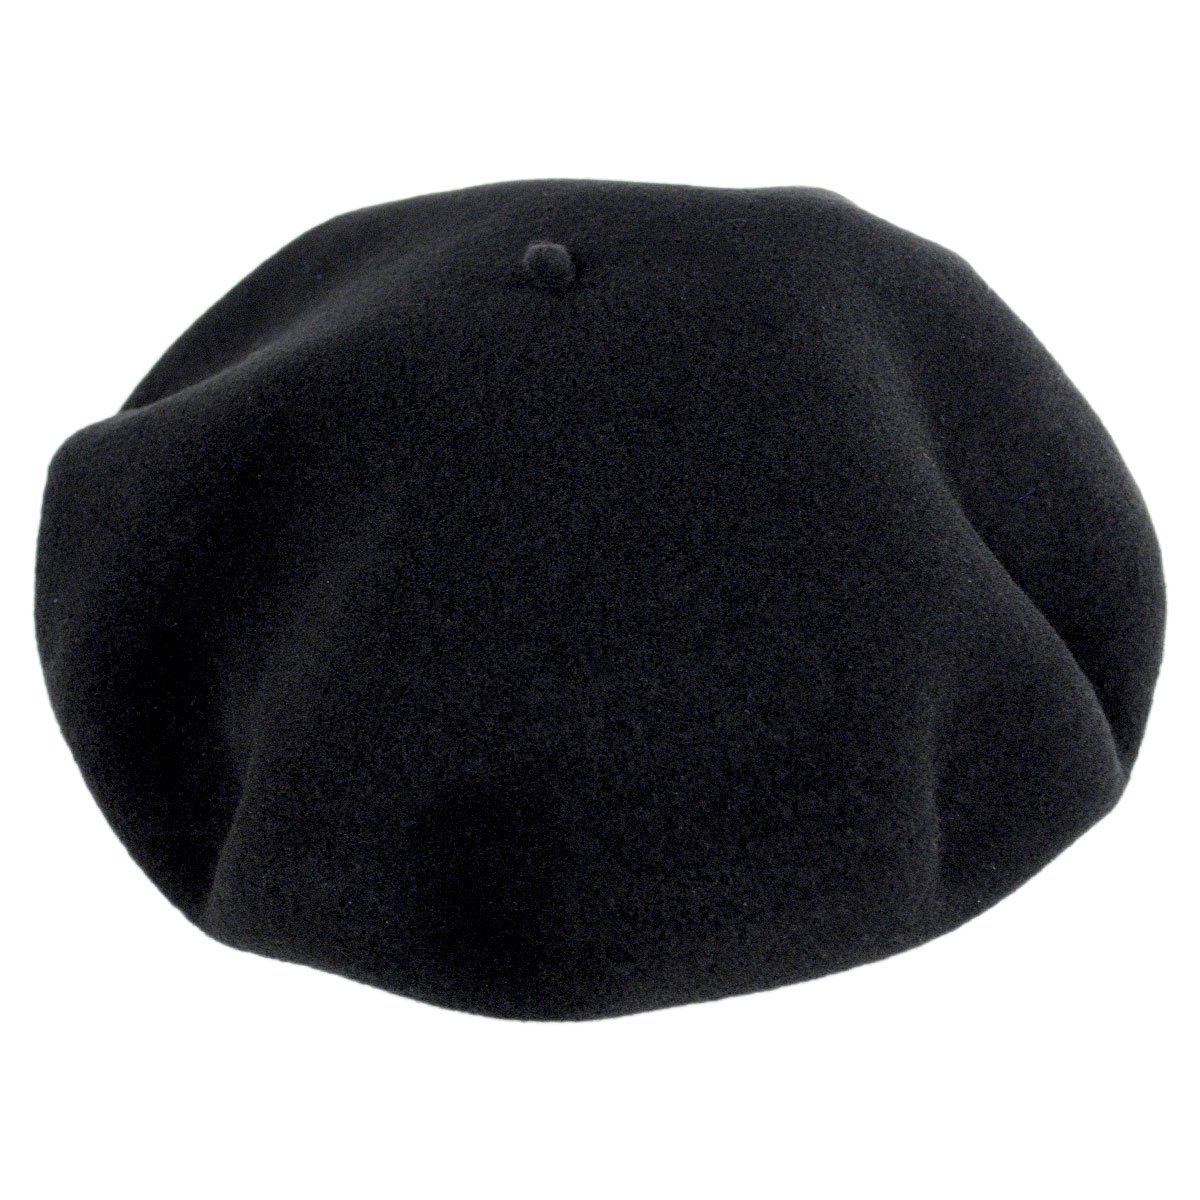 fd5a3890b Hoquy Wool Basque Beret and Luxury Box - Black at Amazon Women's ...